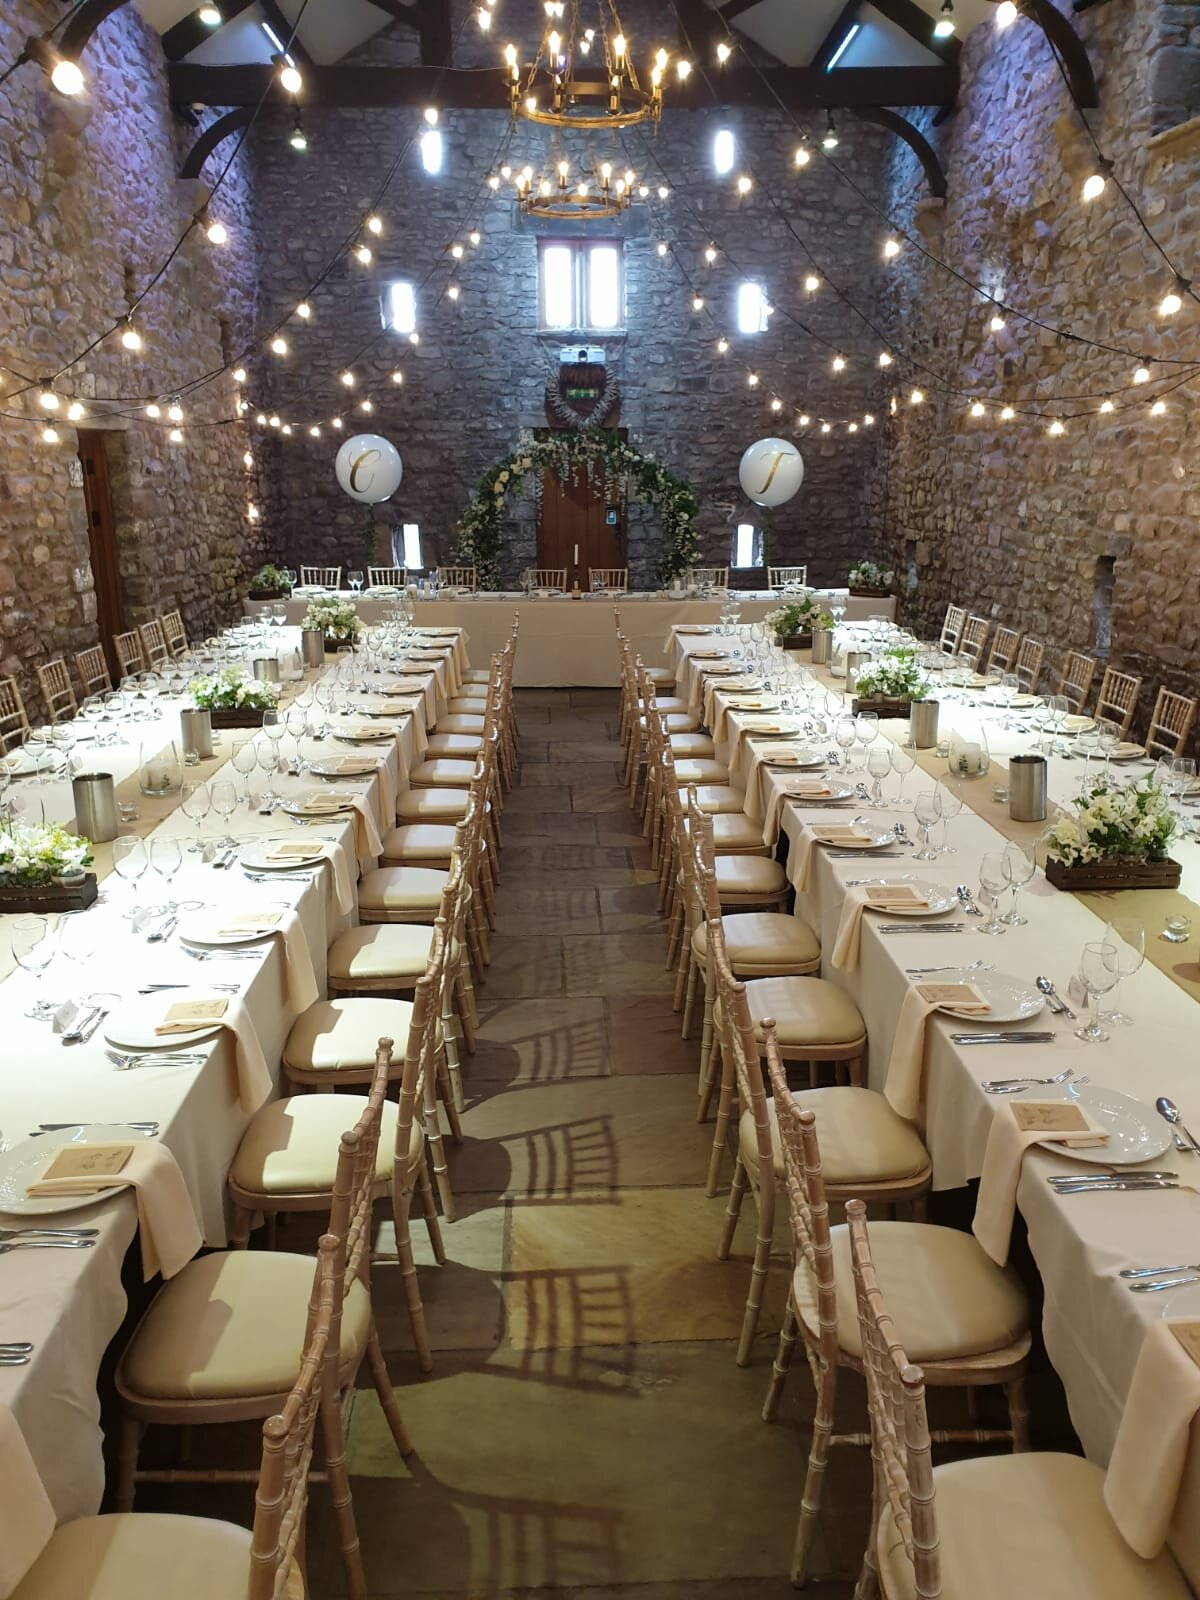 We LOVE the long table layout at Browsholme Hall…works perfectly with the rustic feel of the venue! We delivered a wedding breakfast that involved grazing sharing platters to keep with the relaxed theme.